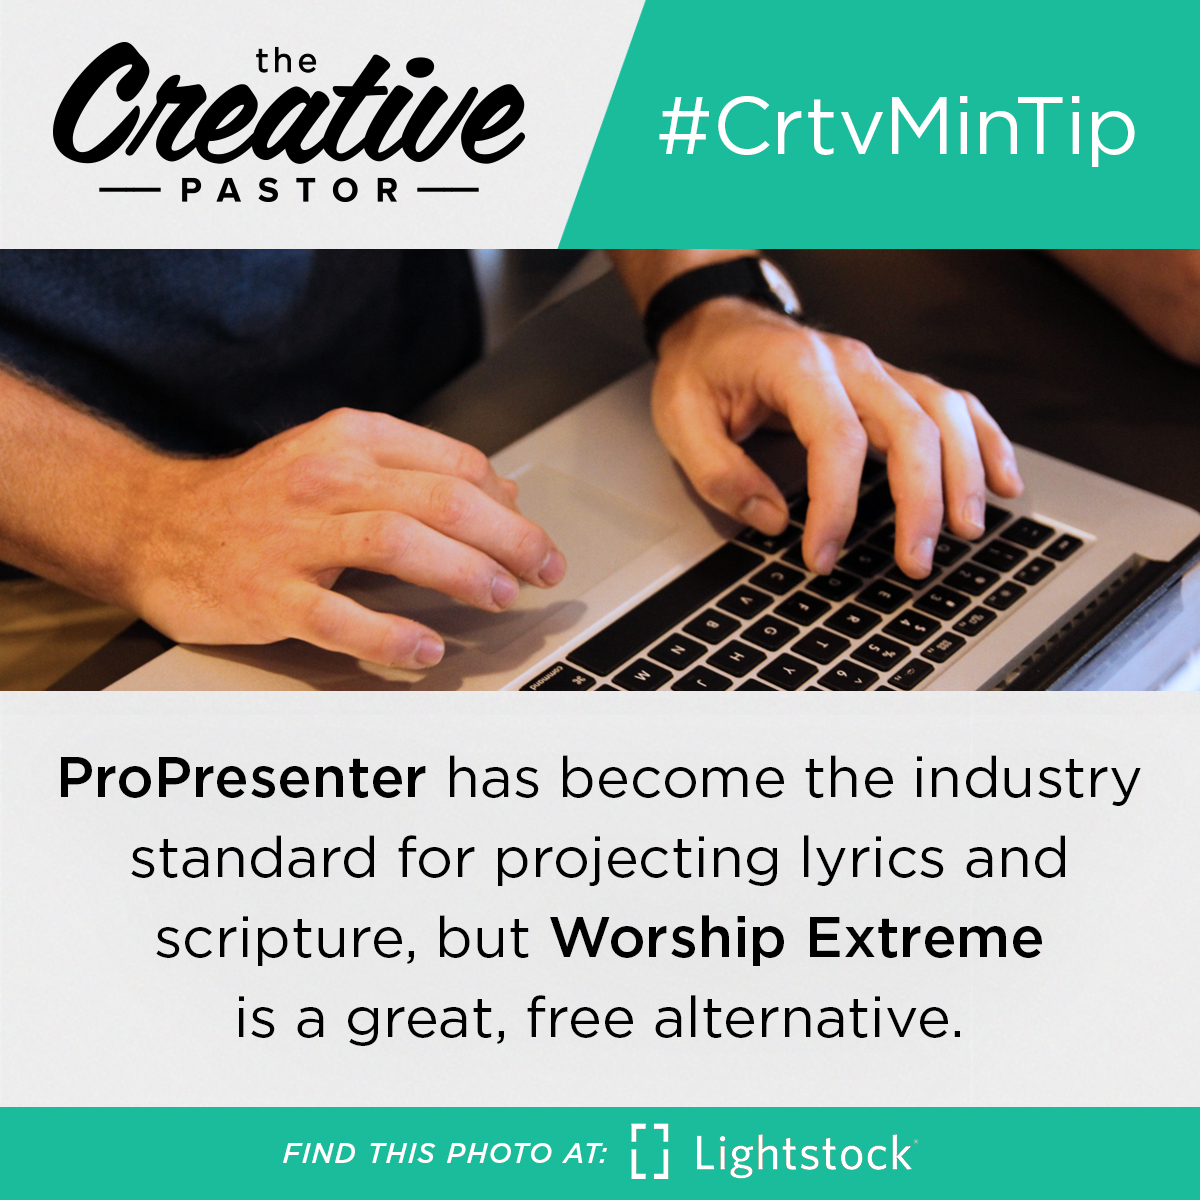 ProPresenter has become the industry standard for projecting lyrics and scripture, but Worship Extreme is a great, free alternative.